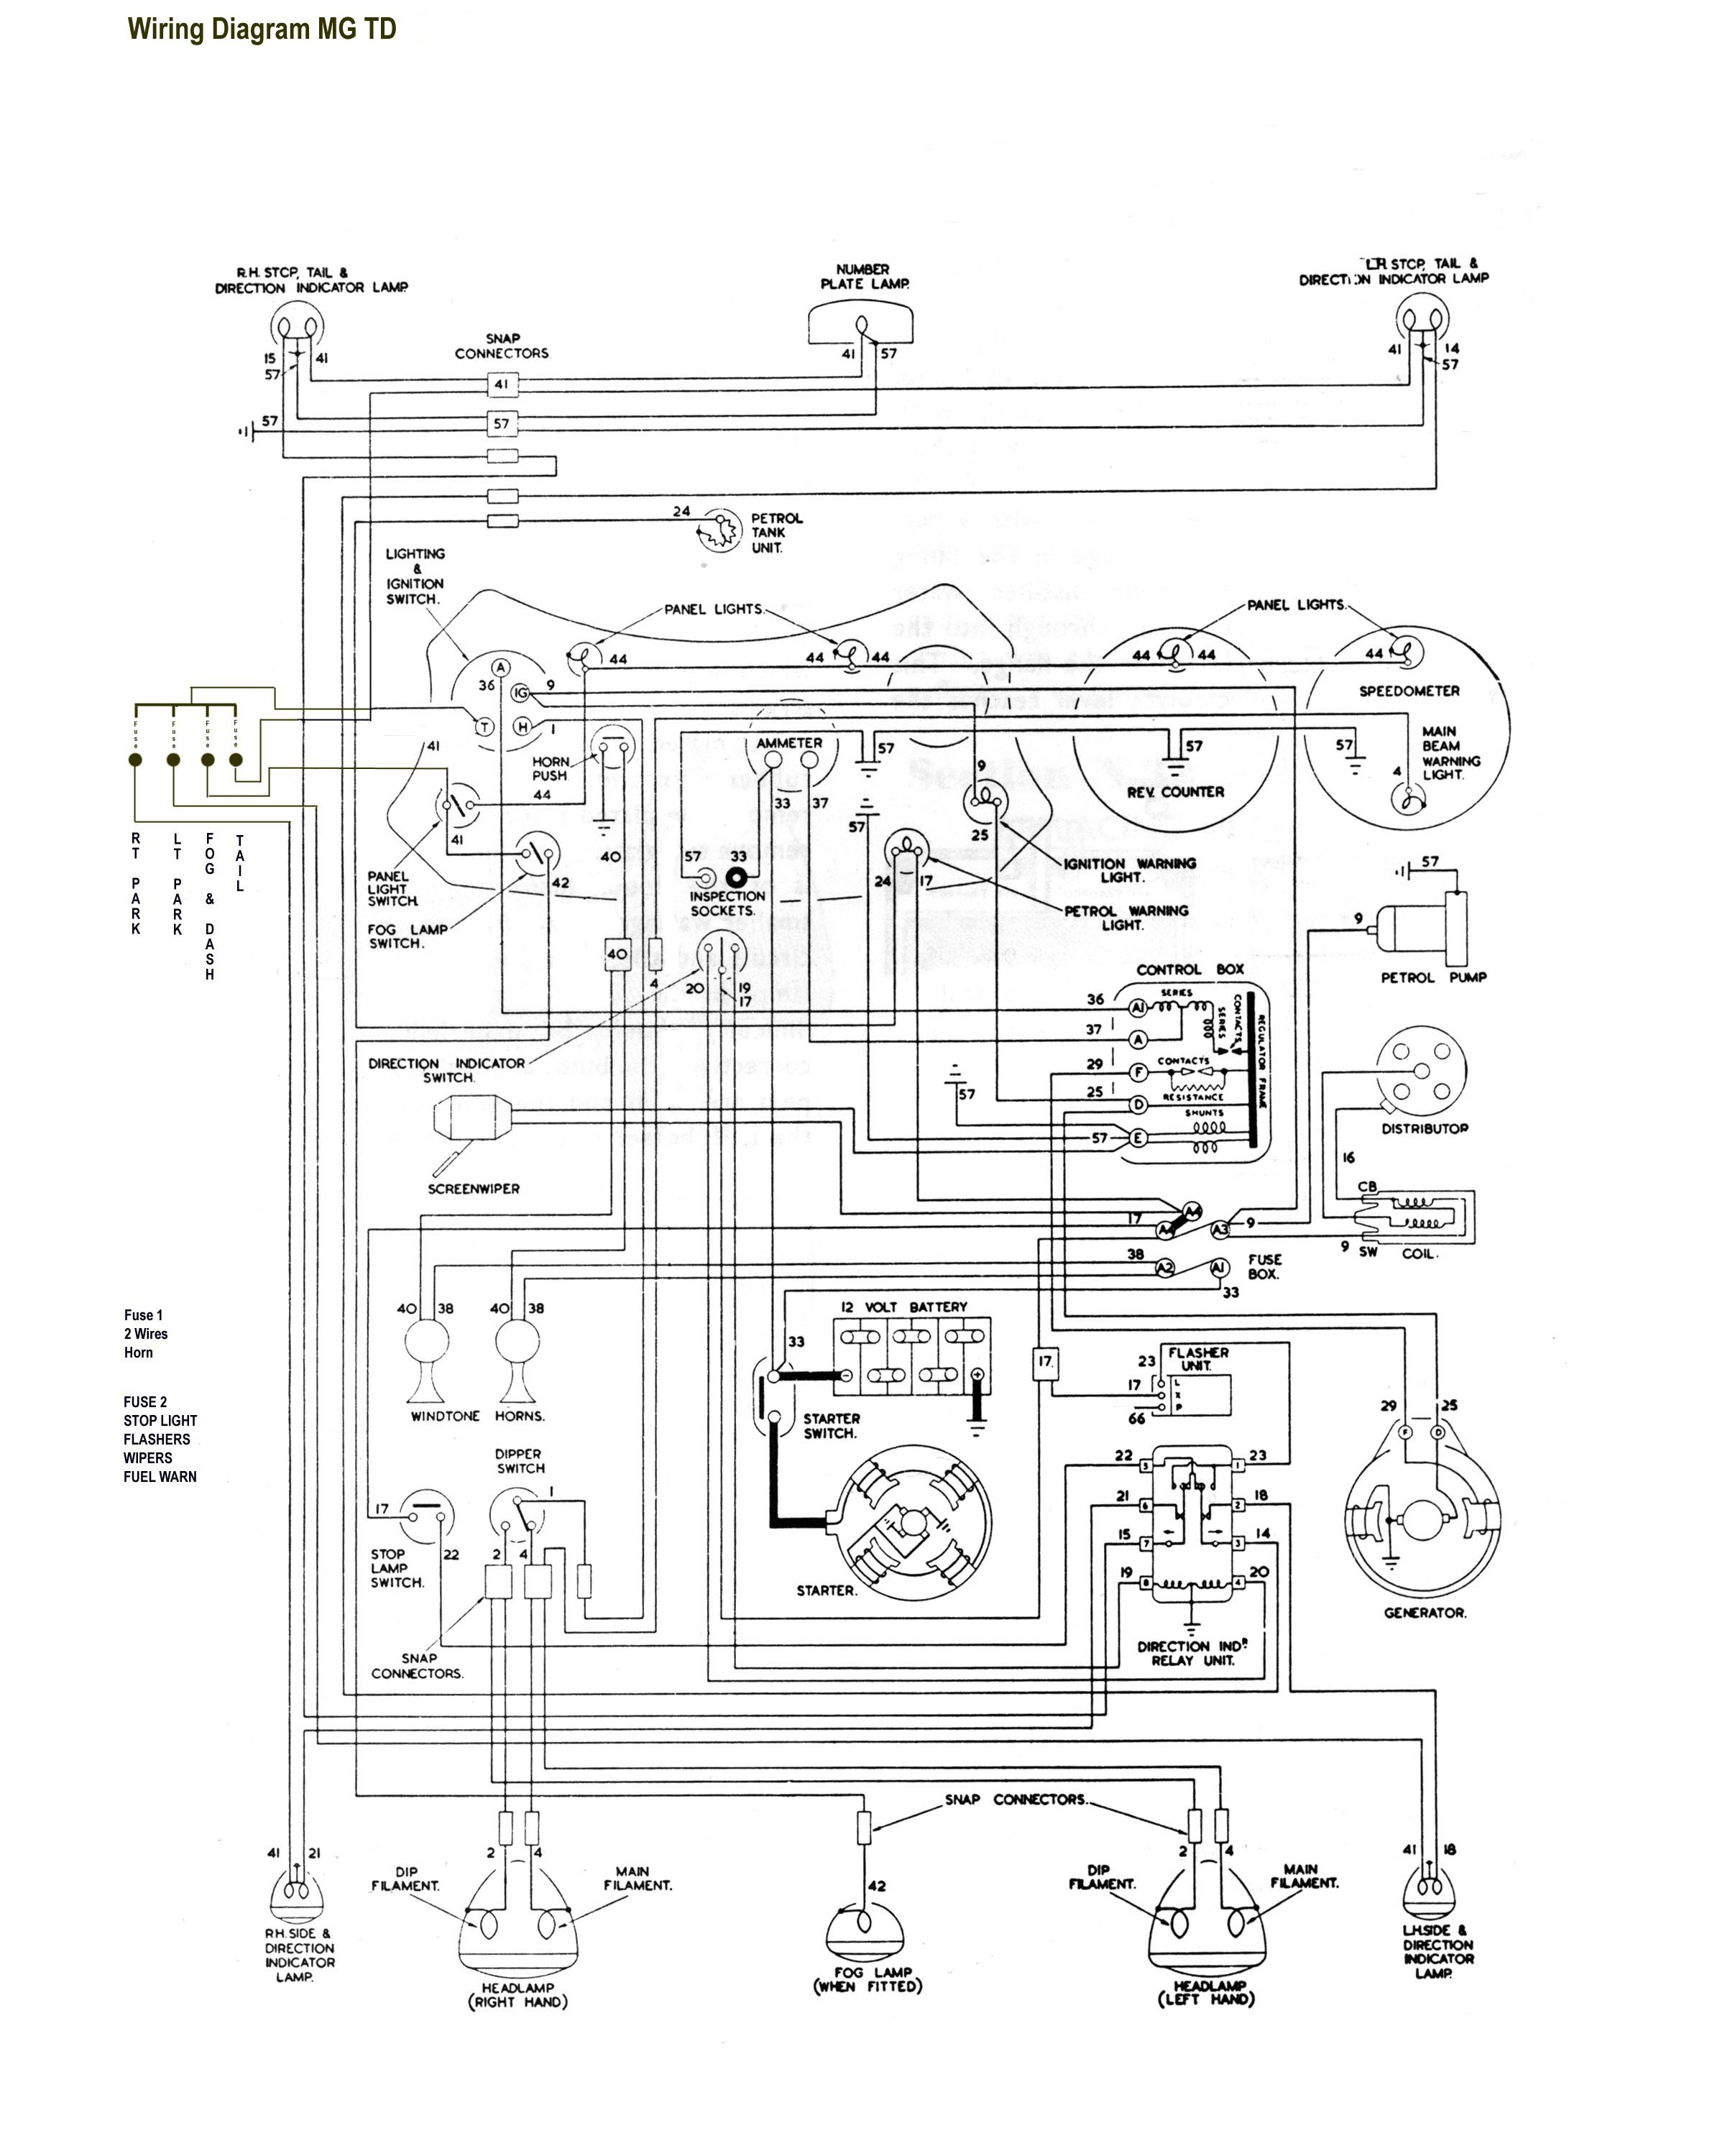 Mg Si 15 Dt Wiring Diagram : 26 Wiring Diagram Images